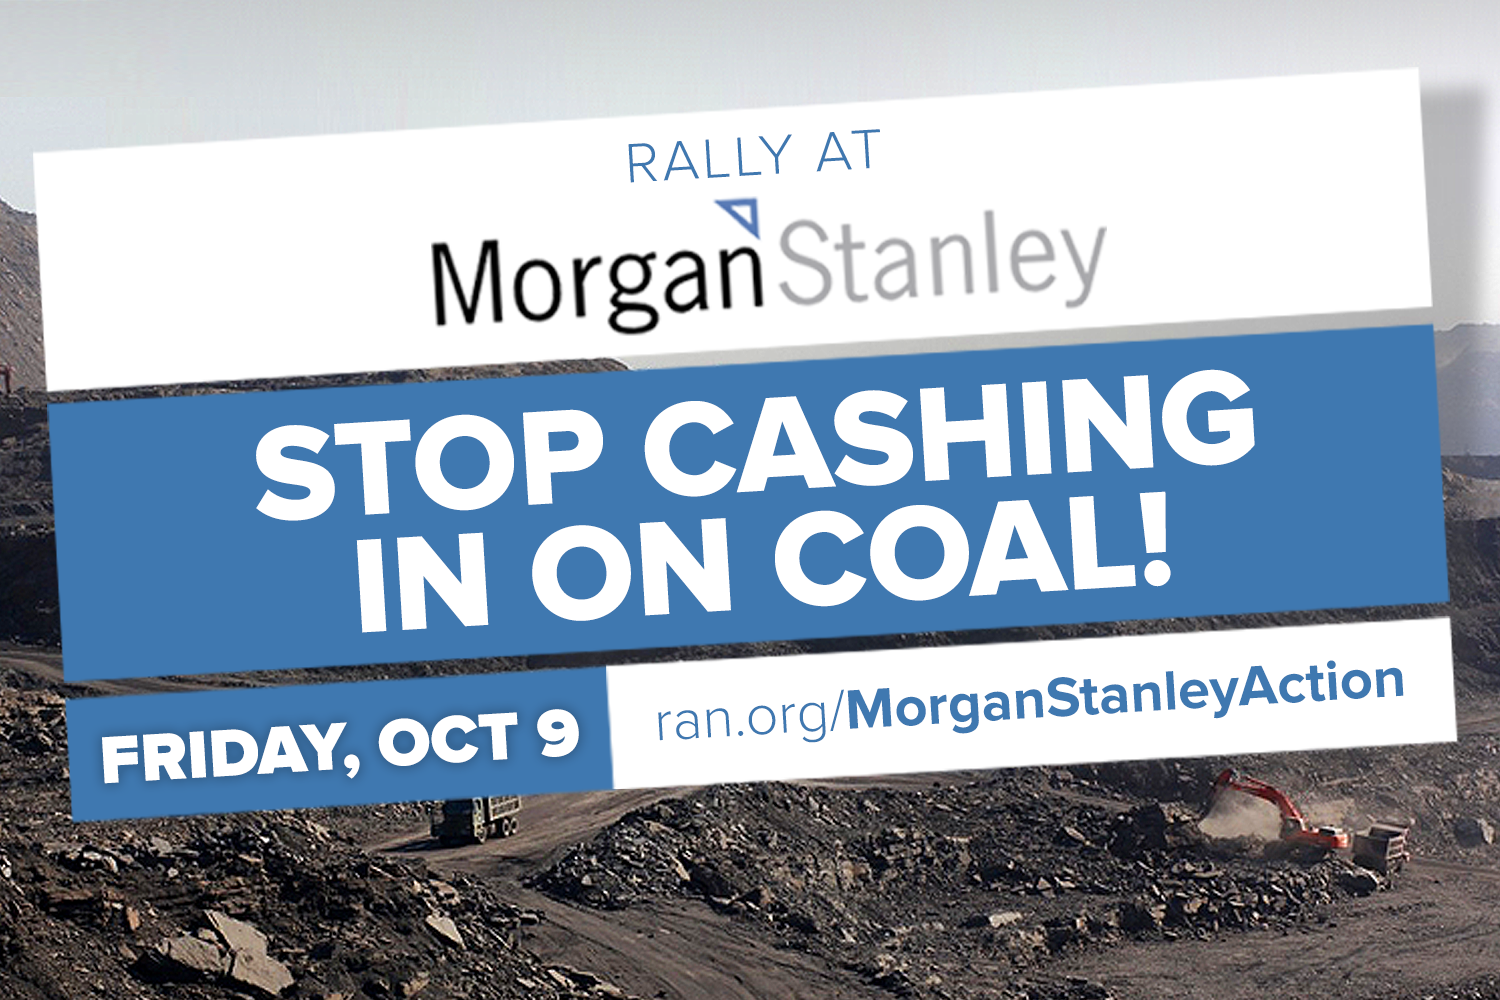 Morgan Stanley Day of Action